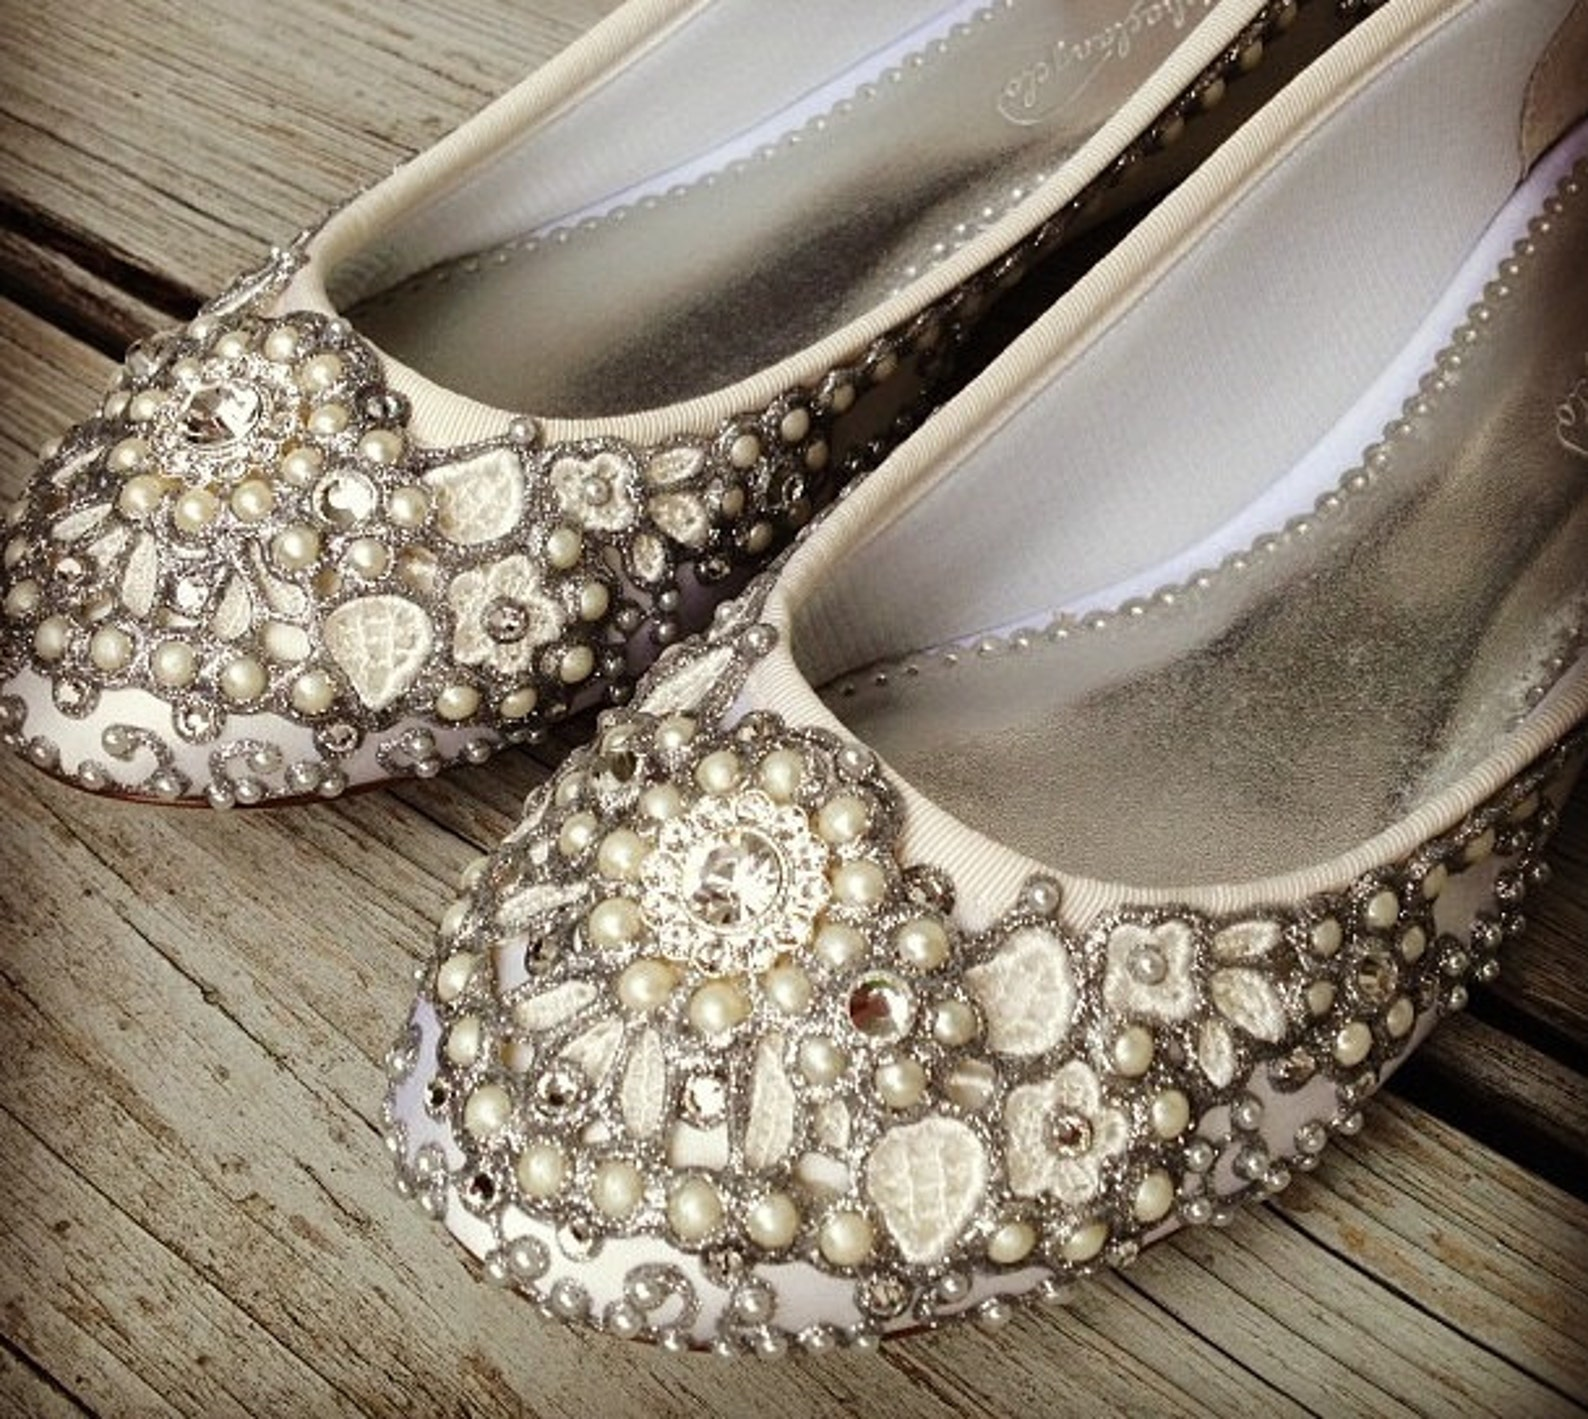 pearl vine bridal ballet flats wedding shoes - any size - pick your own shoe color and crystal color